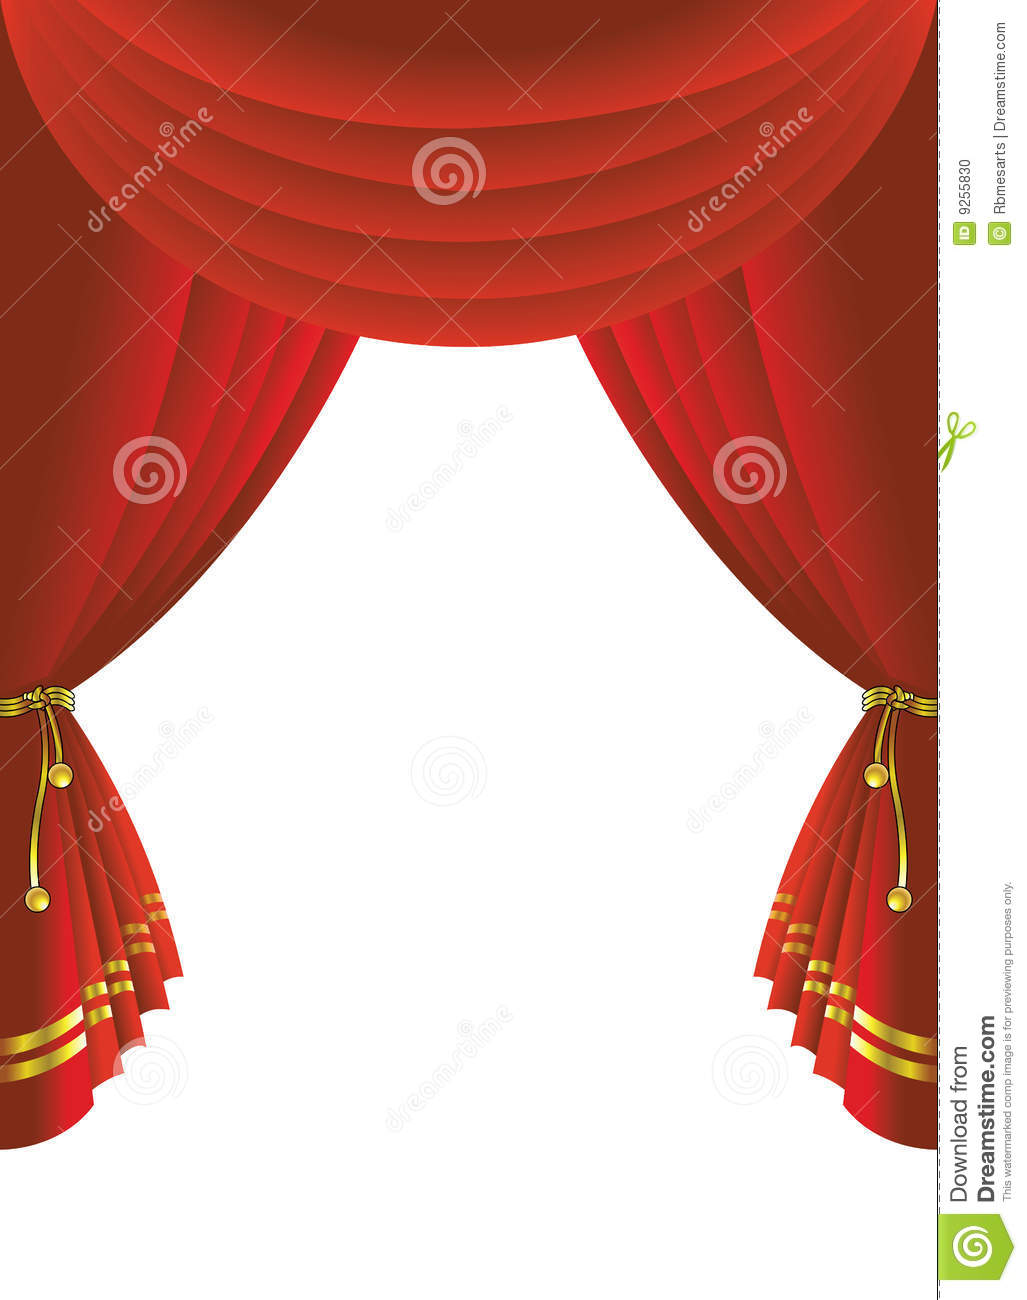 Theatre stage curtain illustration over white background